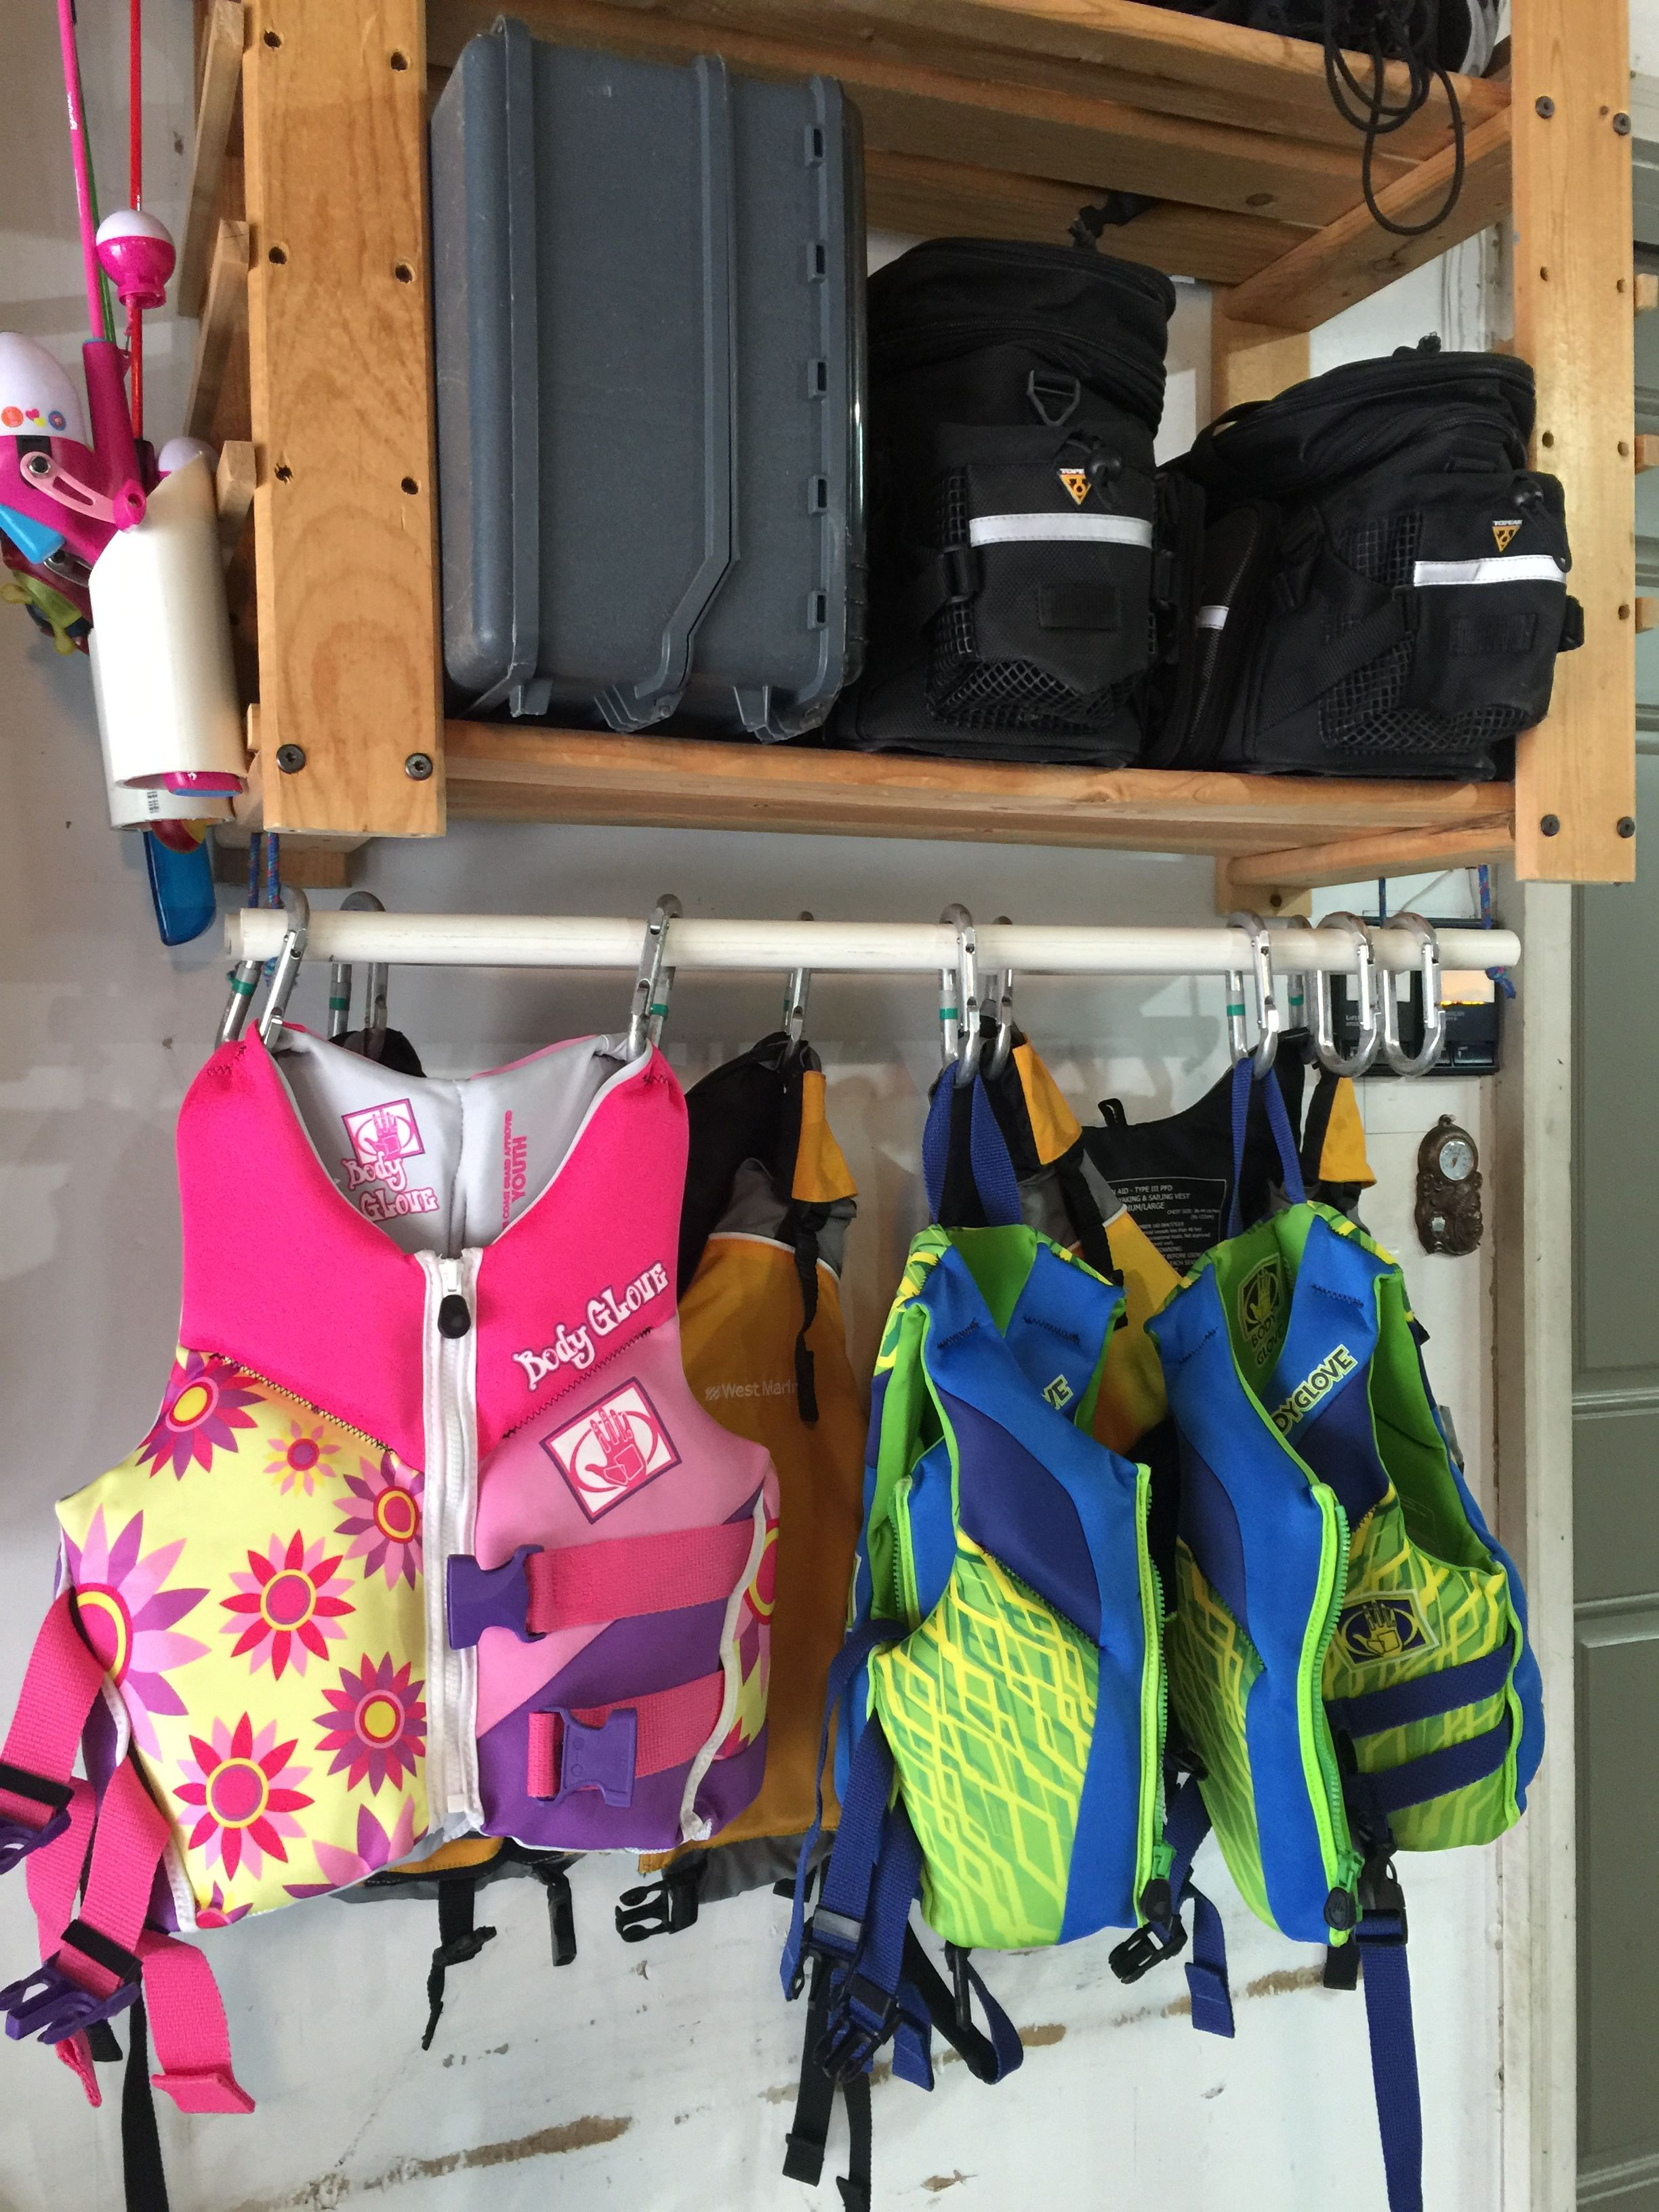 Marvelous Life Jacket Storage And Drying Solution